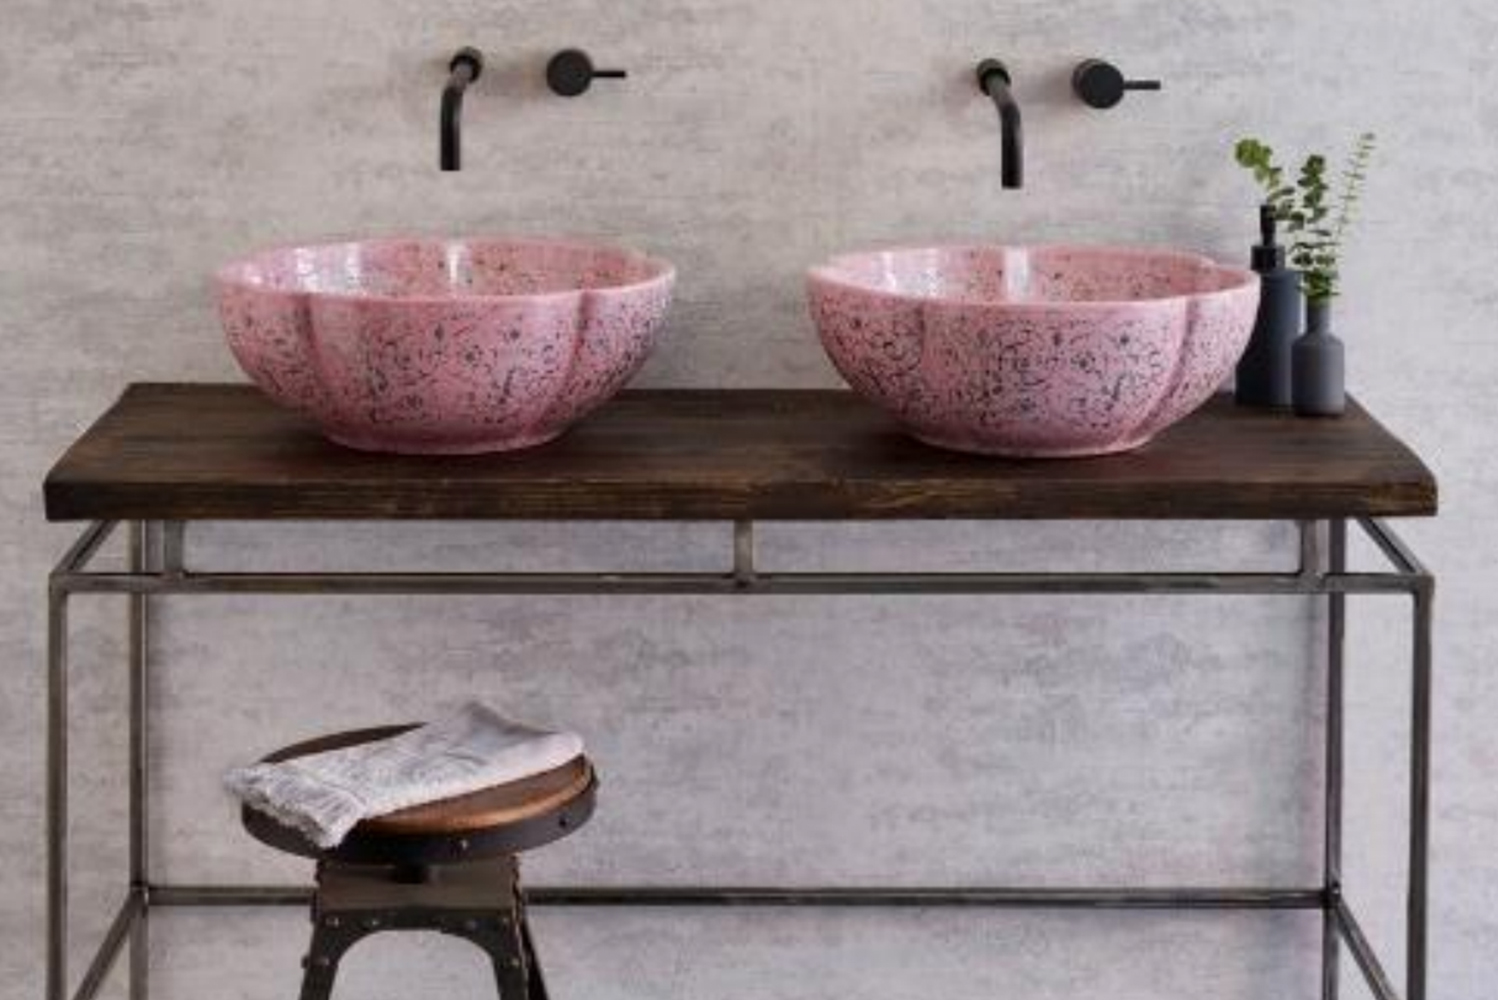 London Basin Company launched hand-decorated porcelain basins.